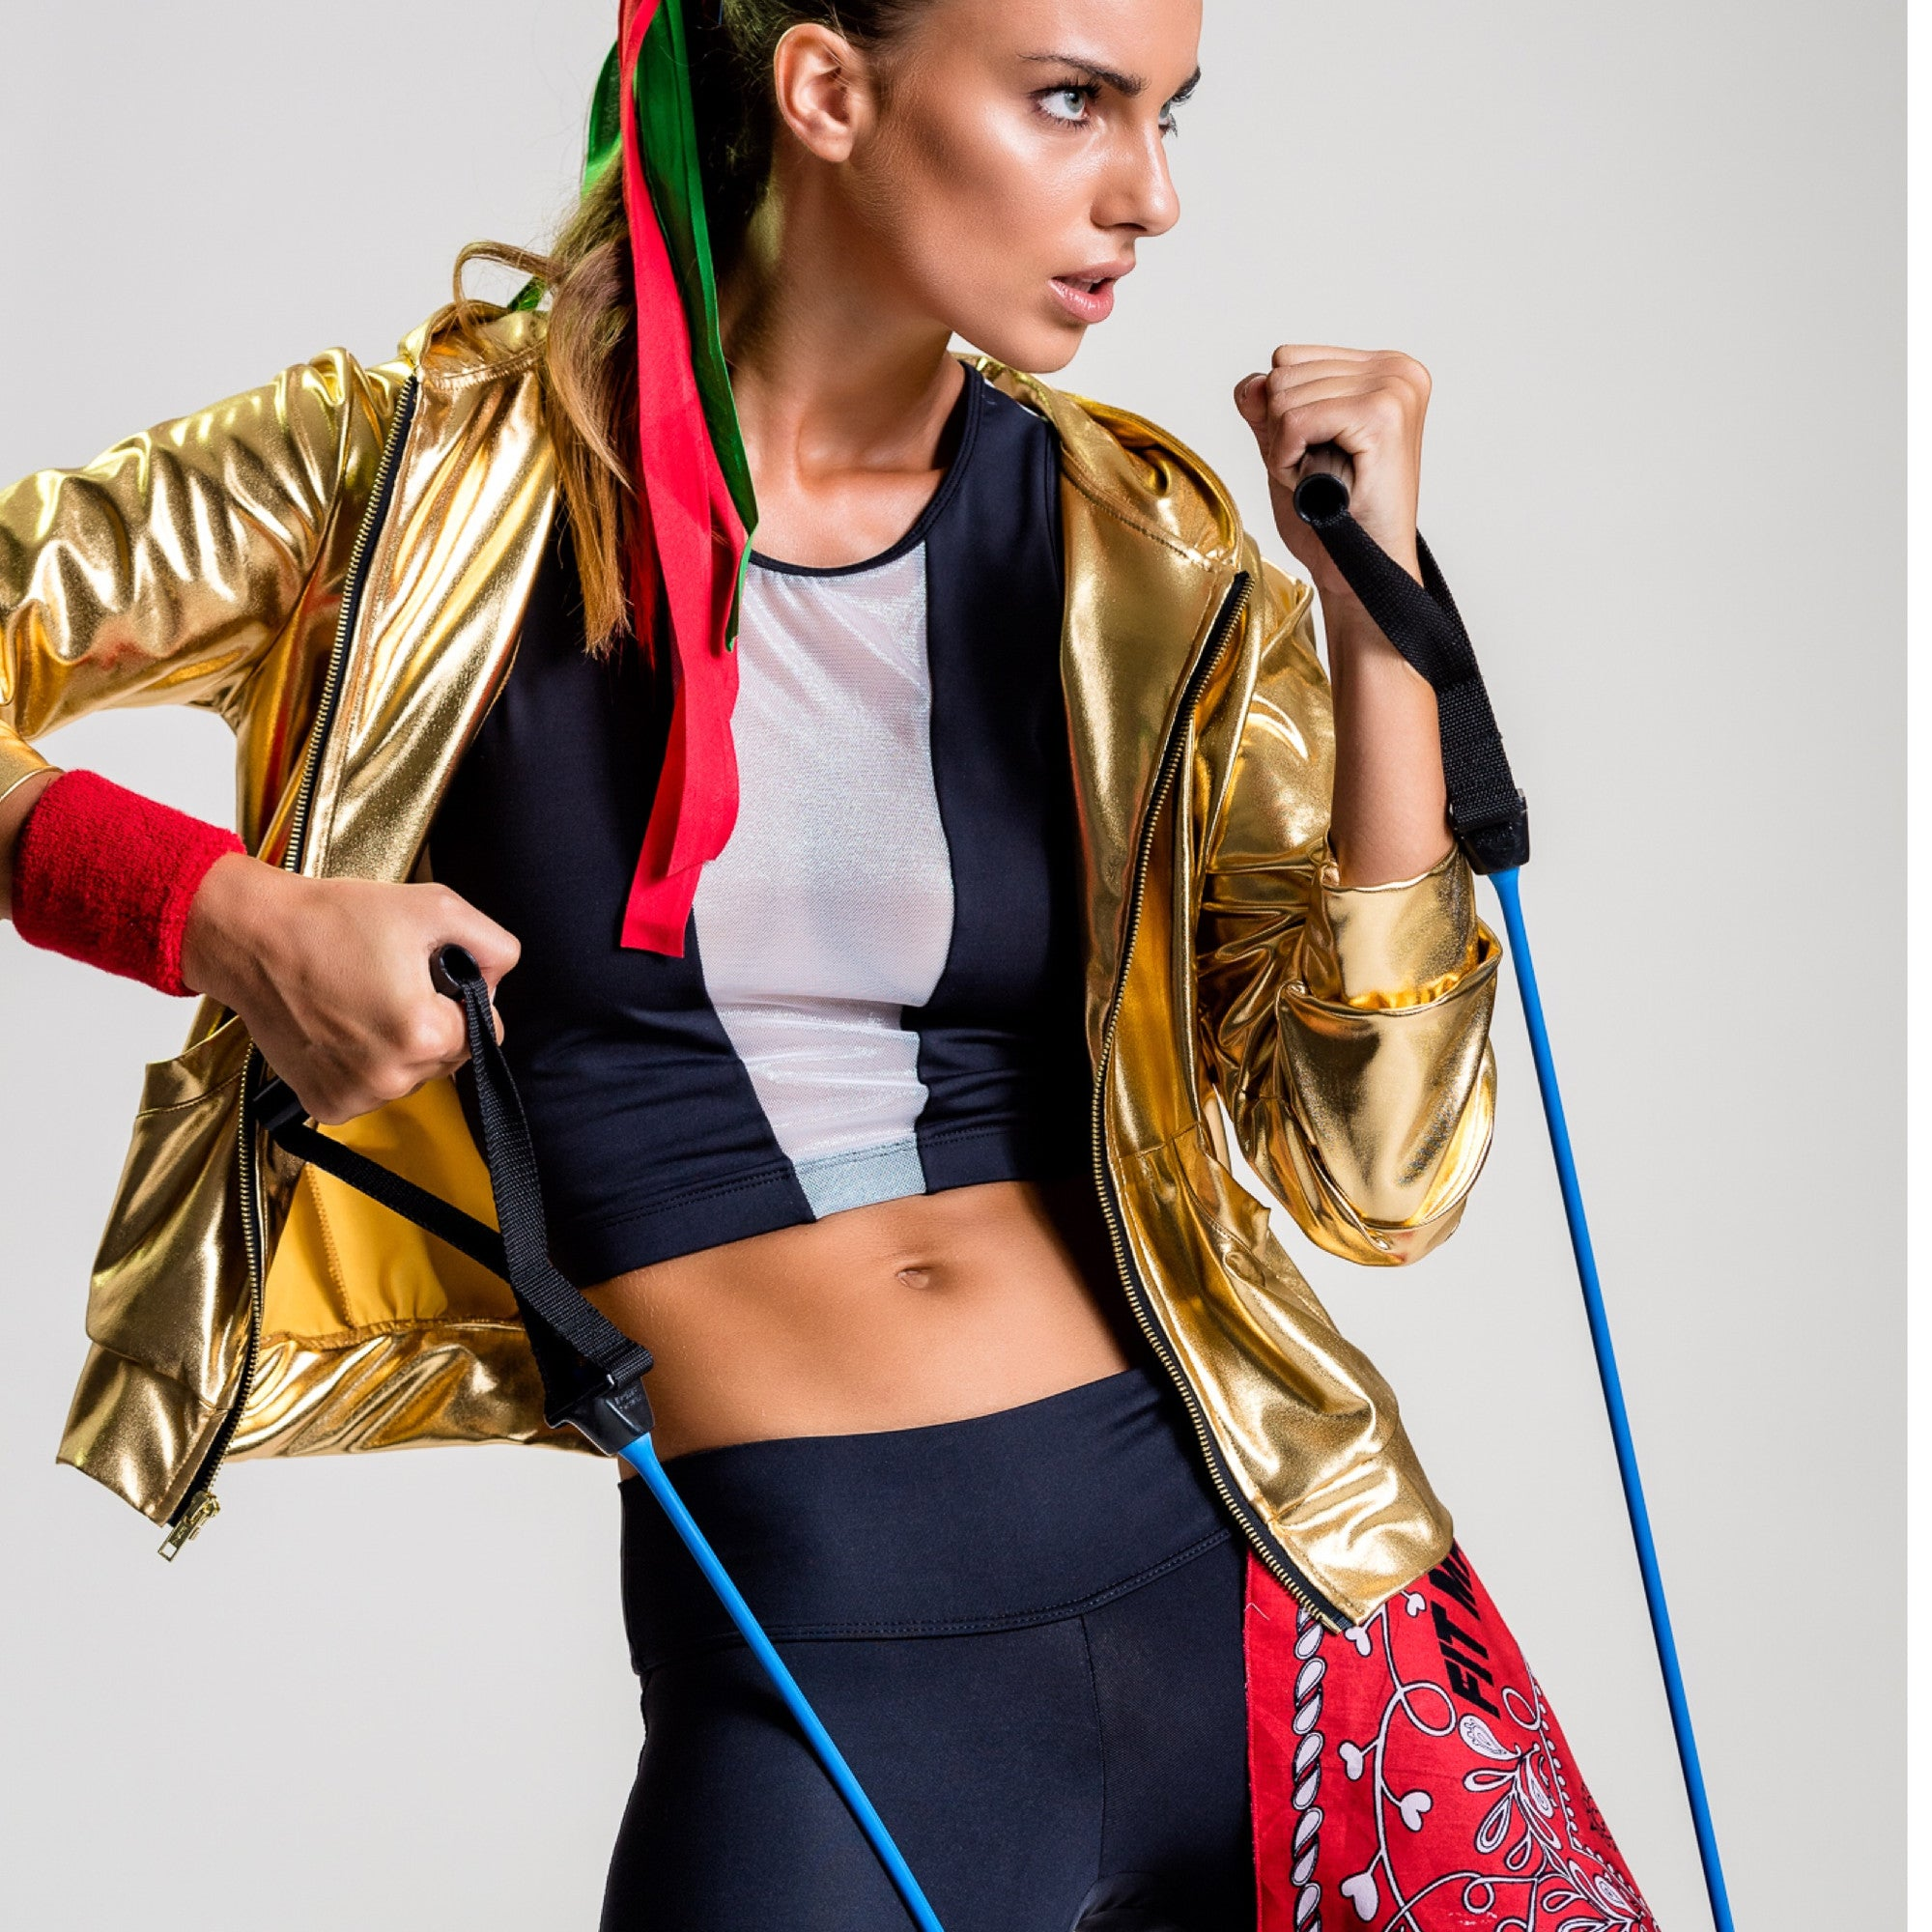 Fitness-Fashion Apparel for all your activities